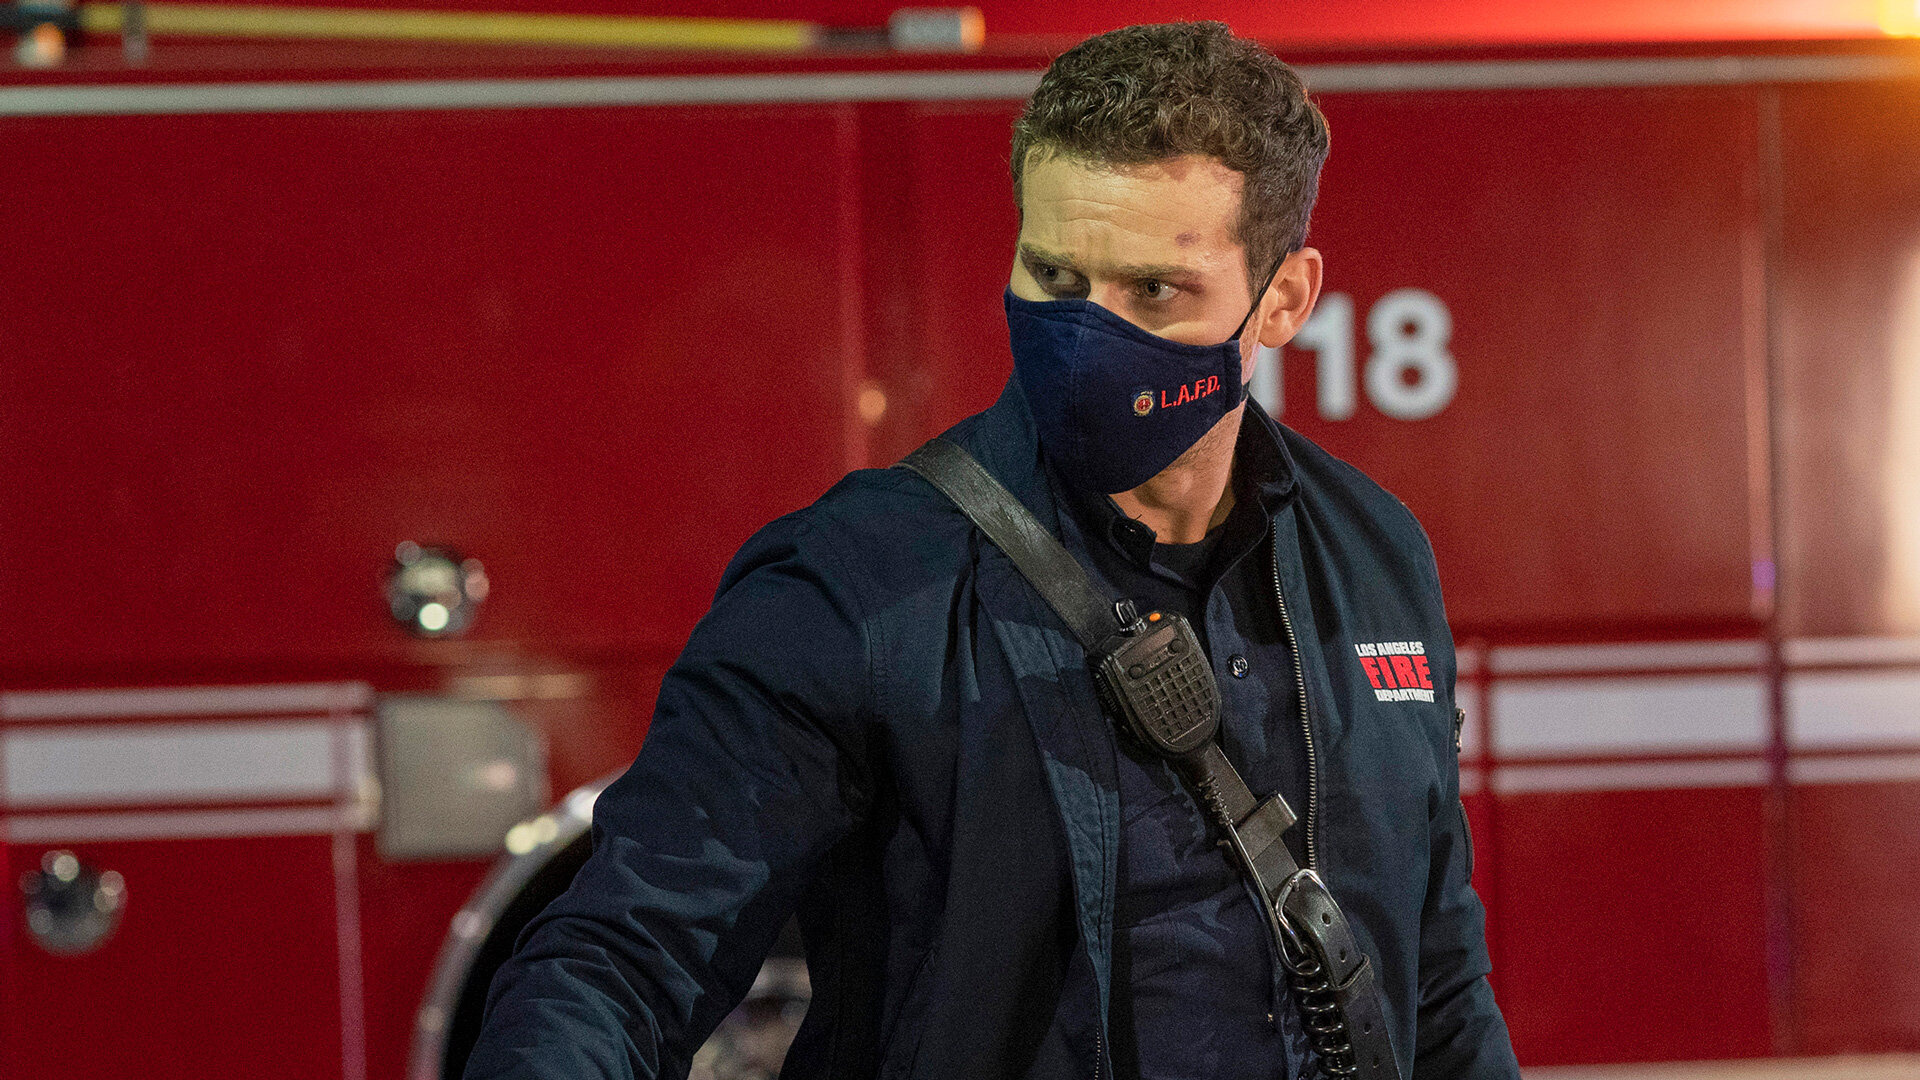 9-1-1 — s04e11 — First Responders